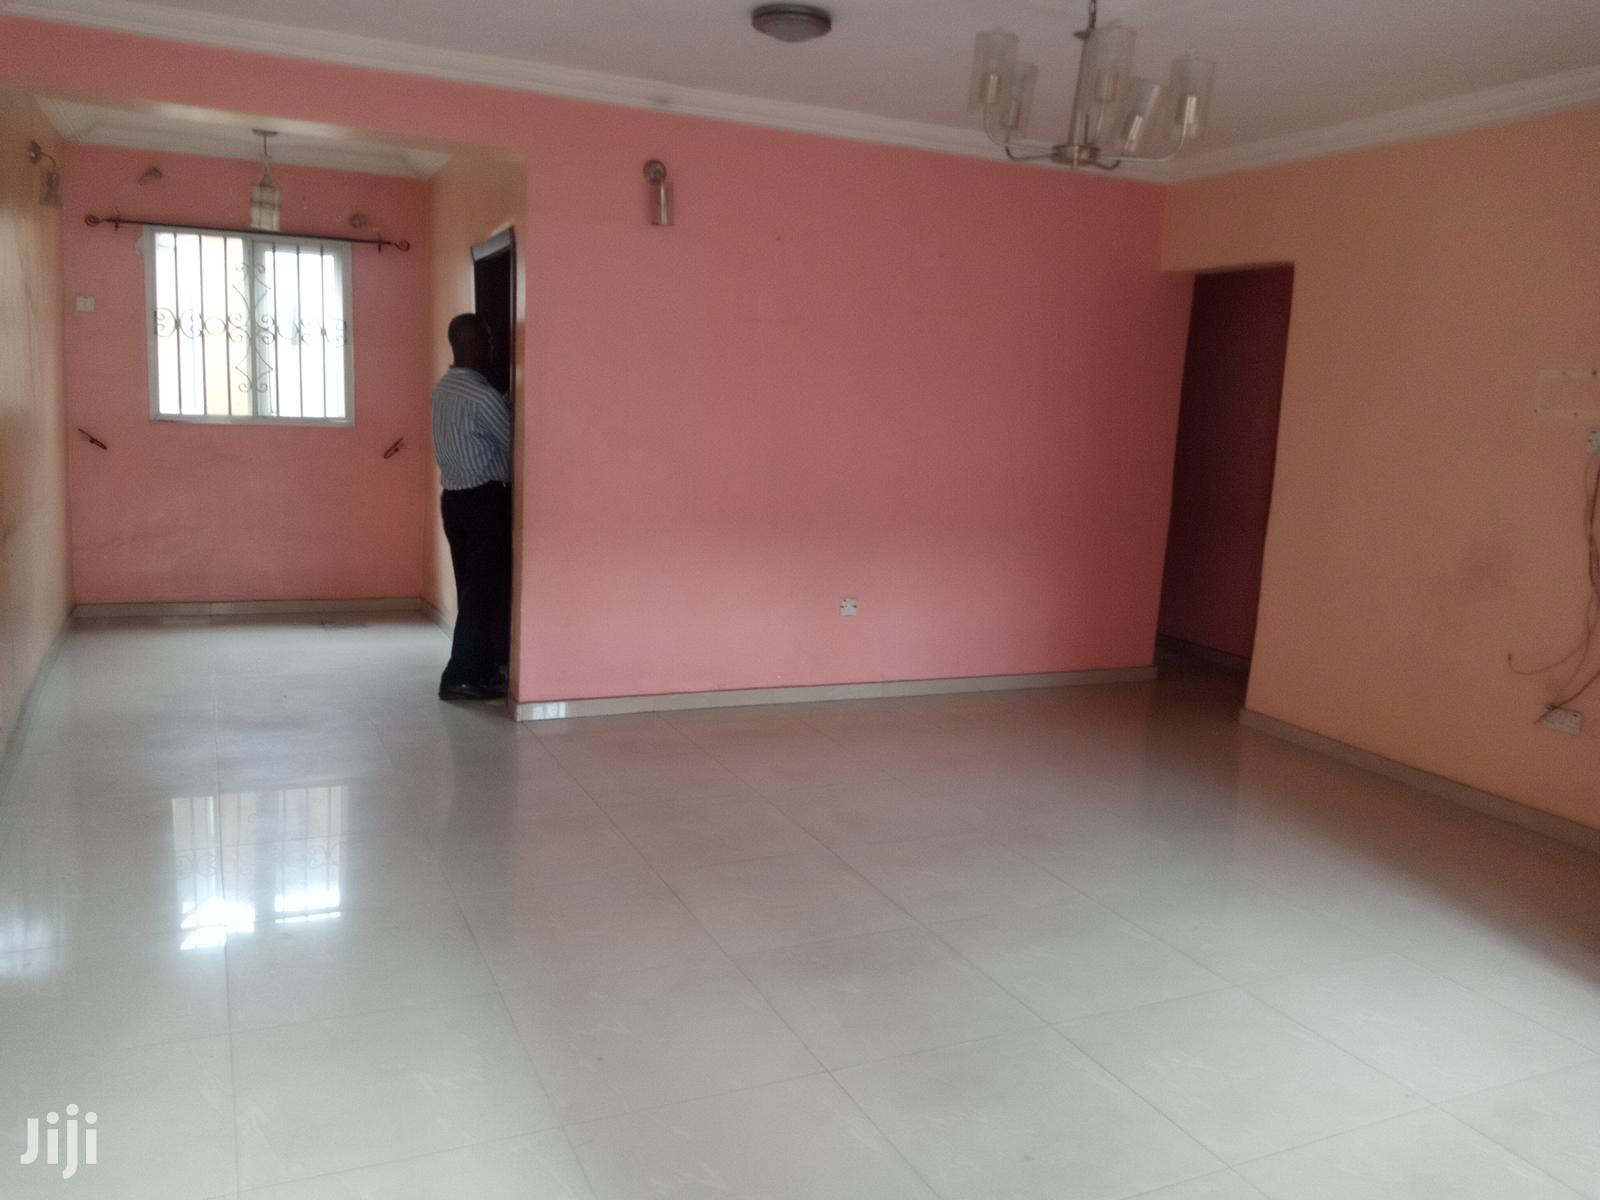 3 Bedroom Flat | Houses & Apartments For Rent for sale in Surulere, Lagos State, Nigeria